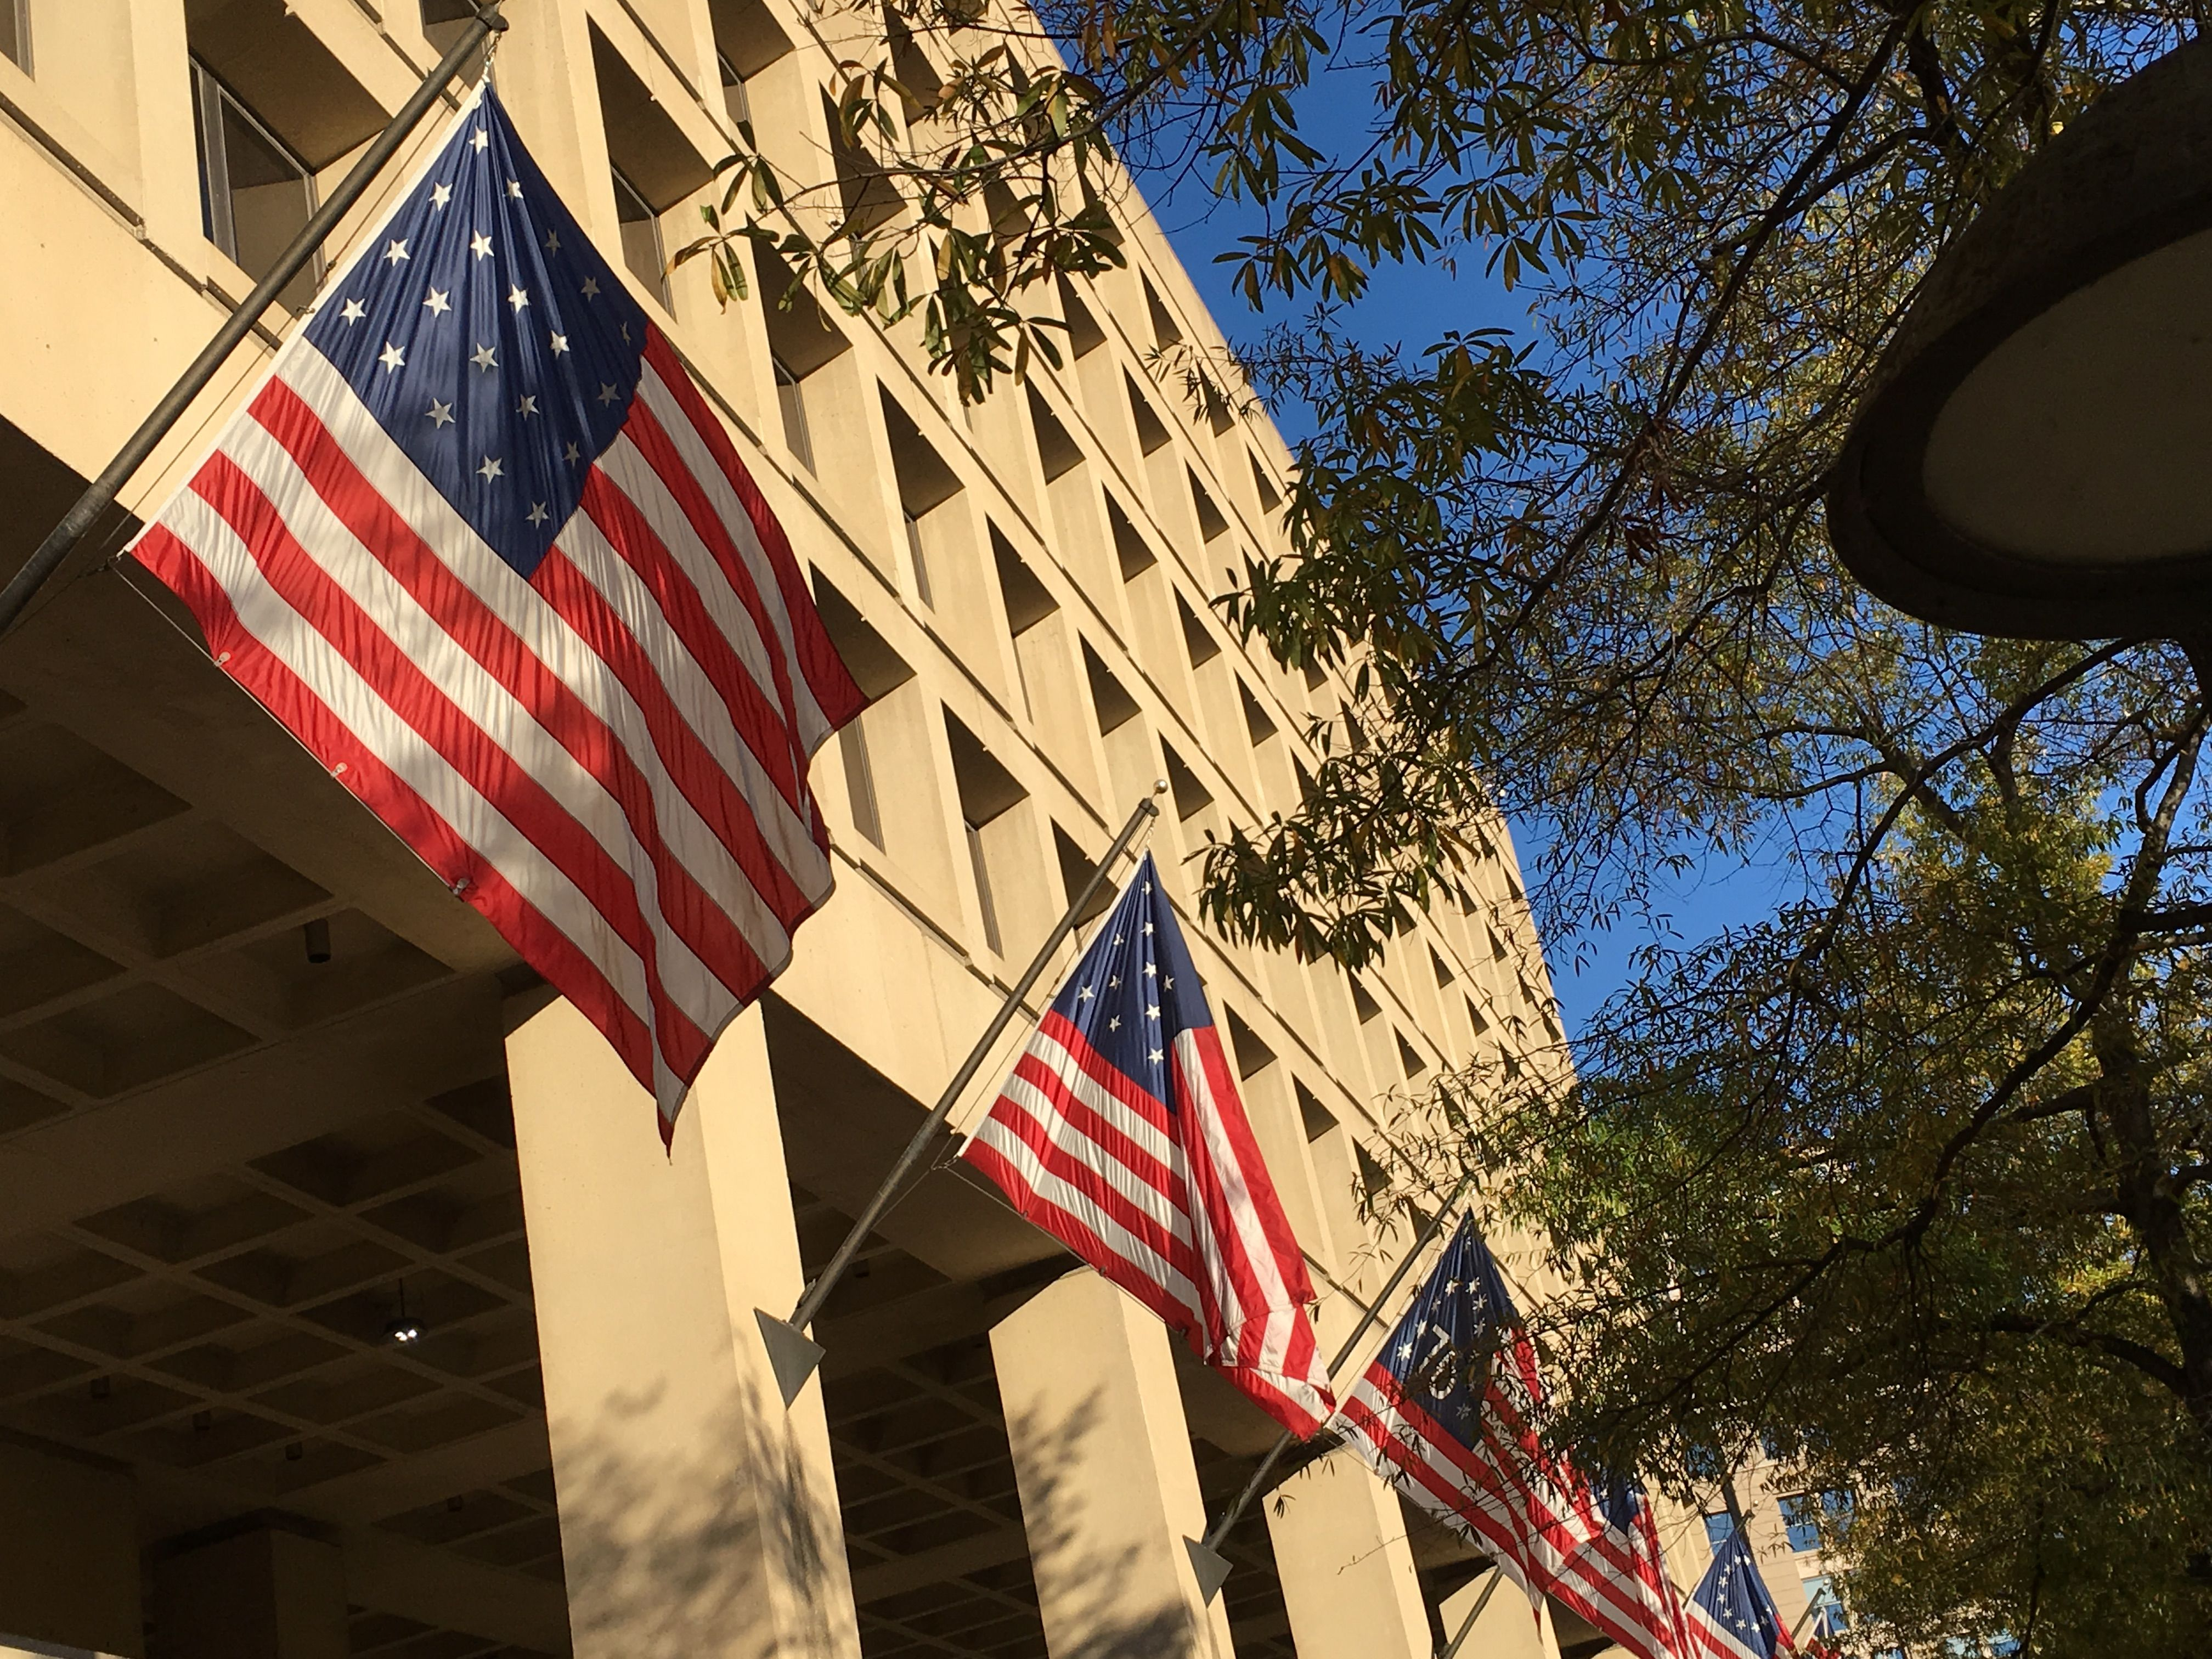 Guarding The Entrance To The Fbi S J Edgar Hoover Building In Washington D C Every Version Of The American Flag On Guard American Flag Hoover Building Flag